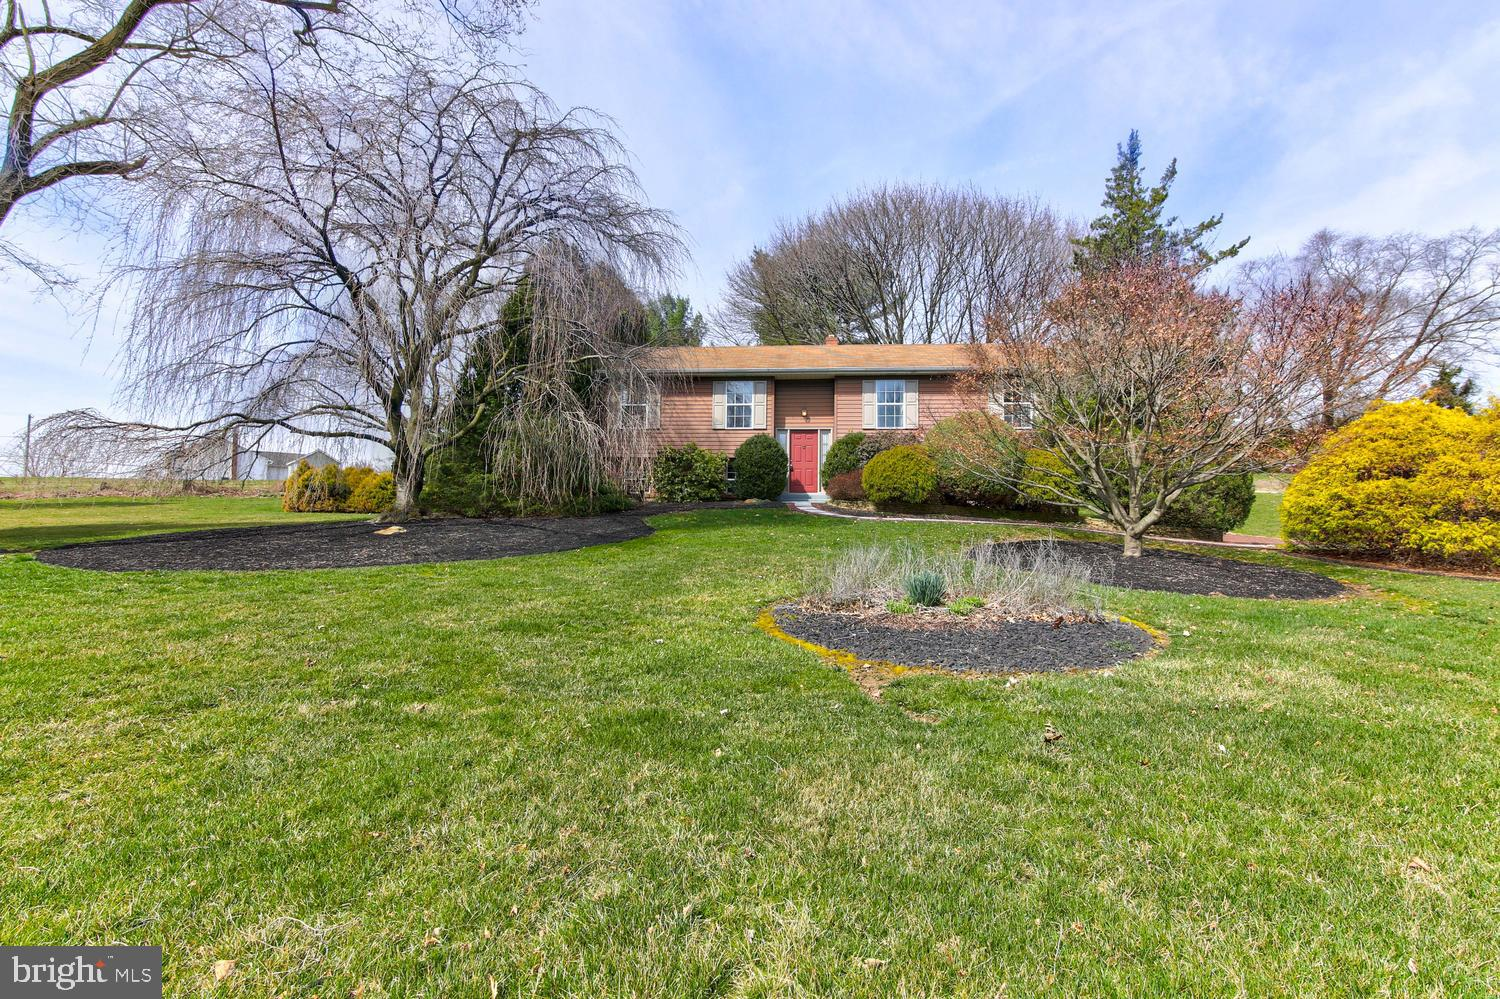 128 WESTVIEW DRIVE, LINCOLN UNIVERSITY, PA 19352